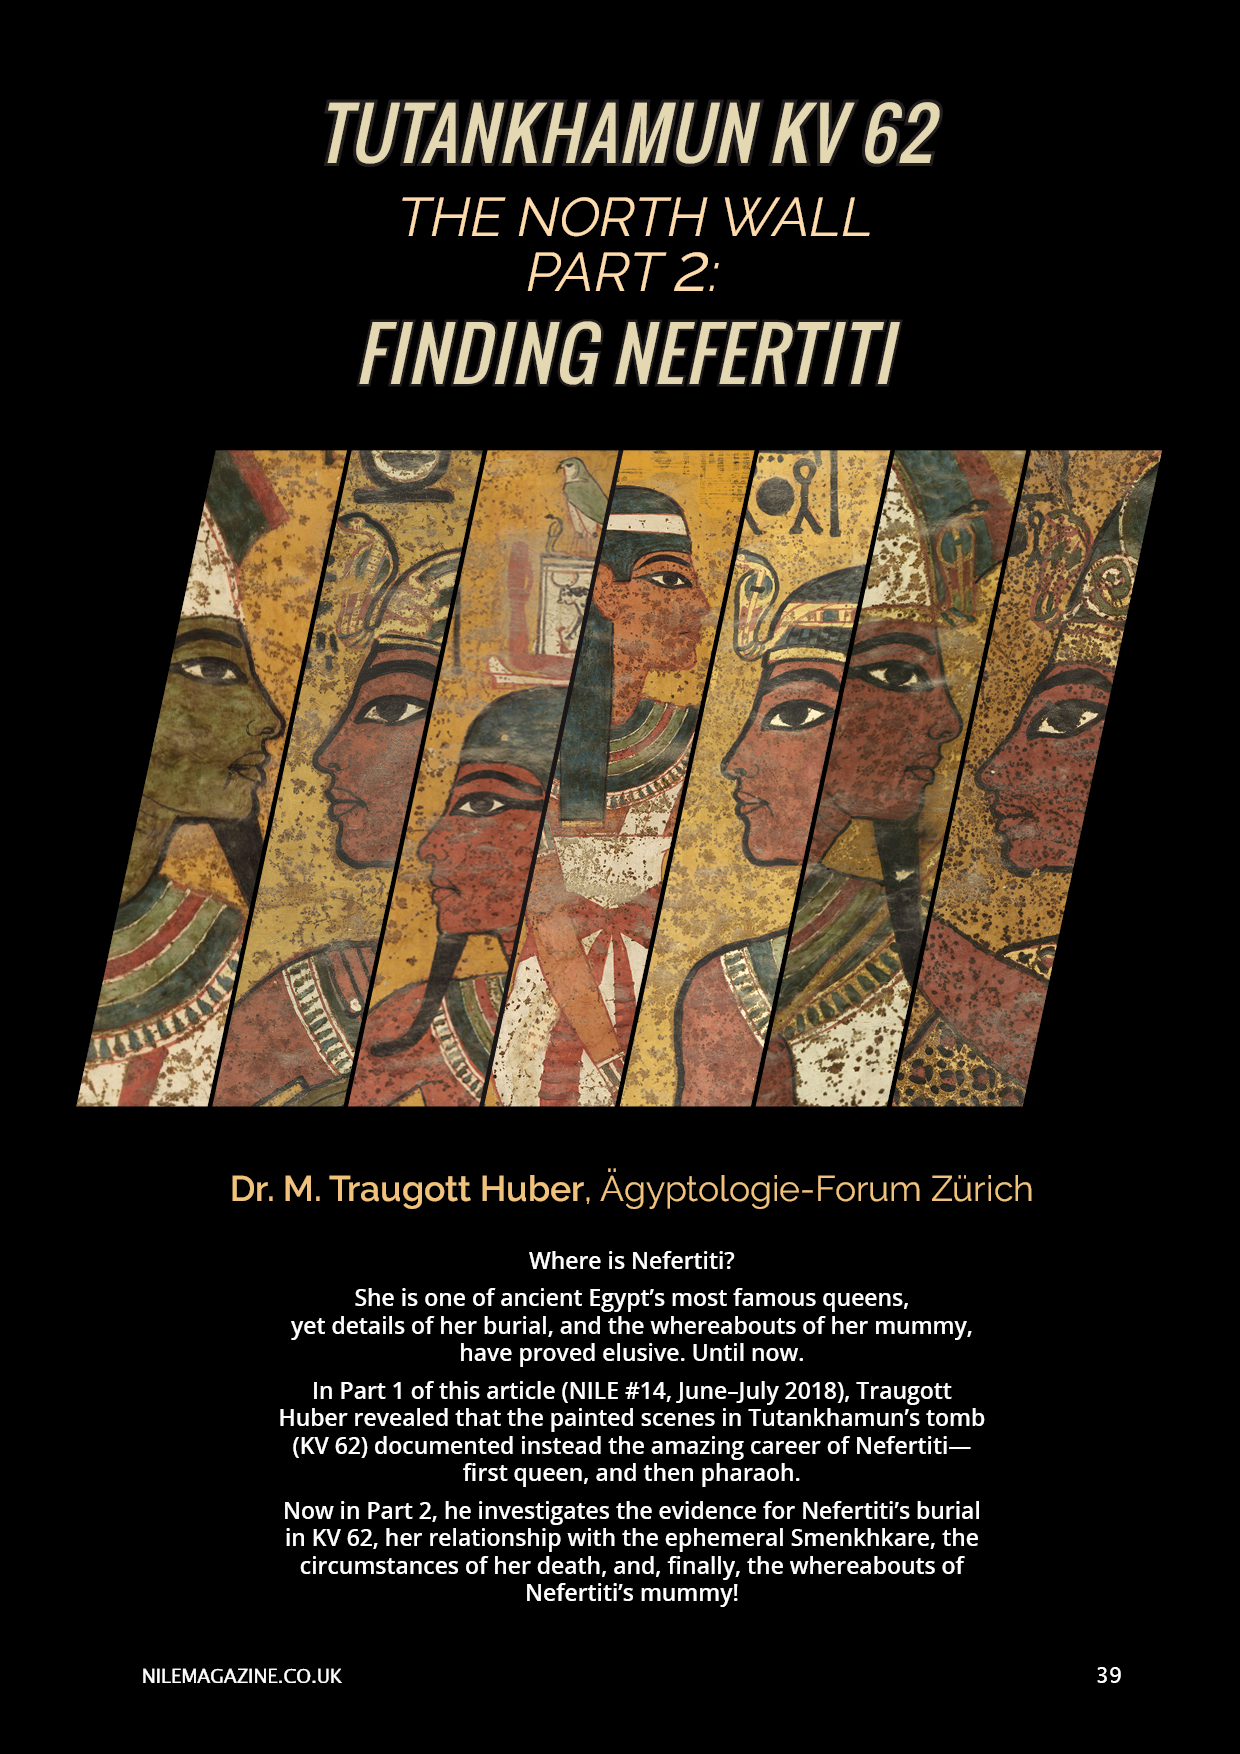 Nile 17, Finding Nefertiti 1 1A.jpg